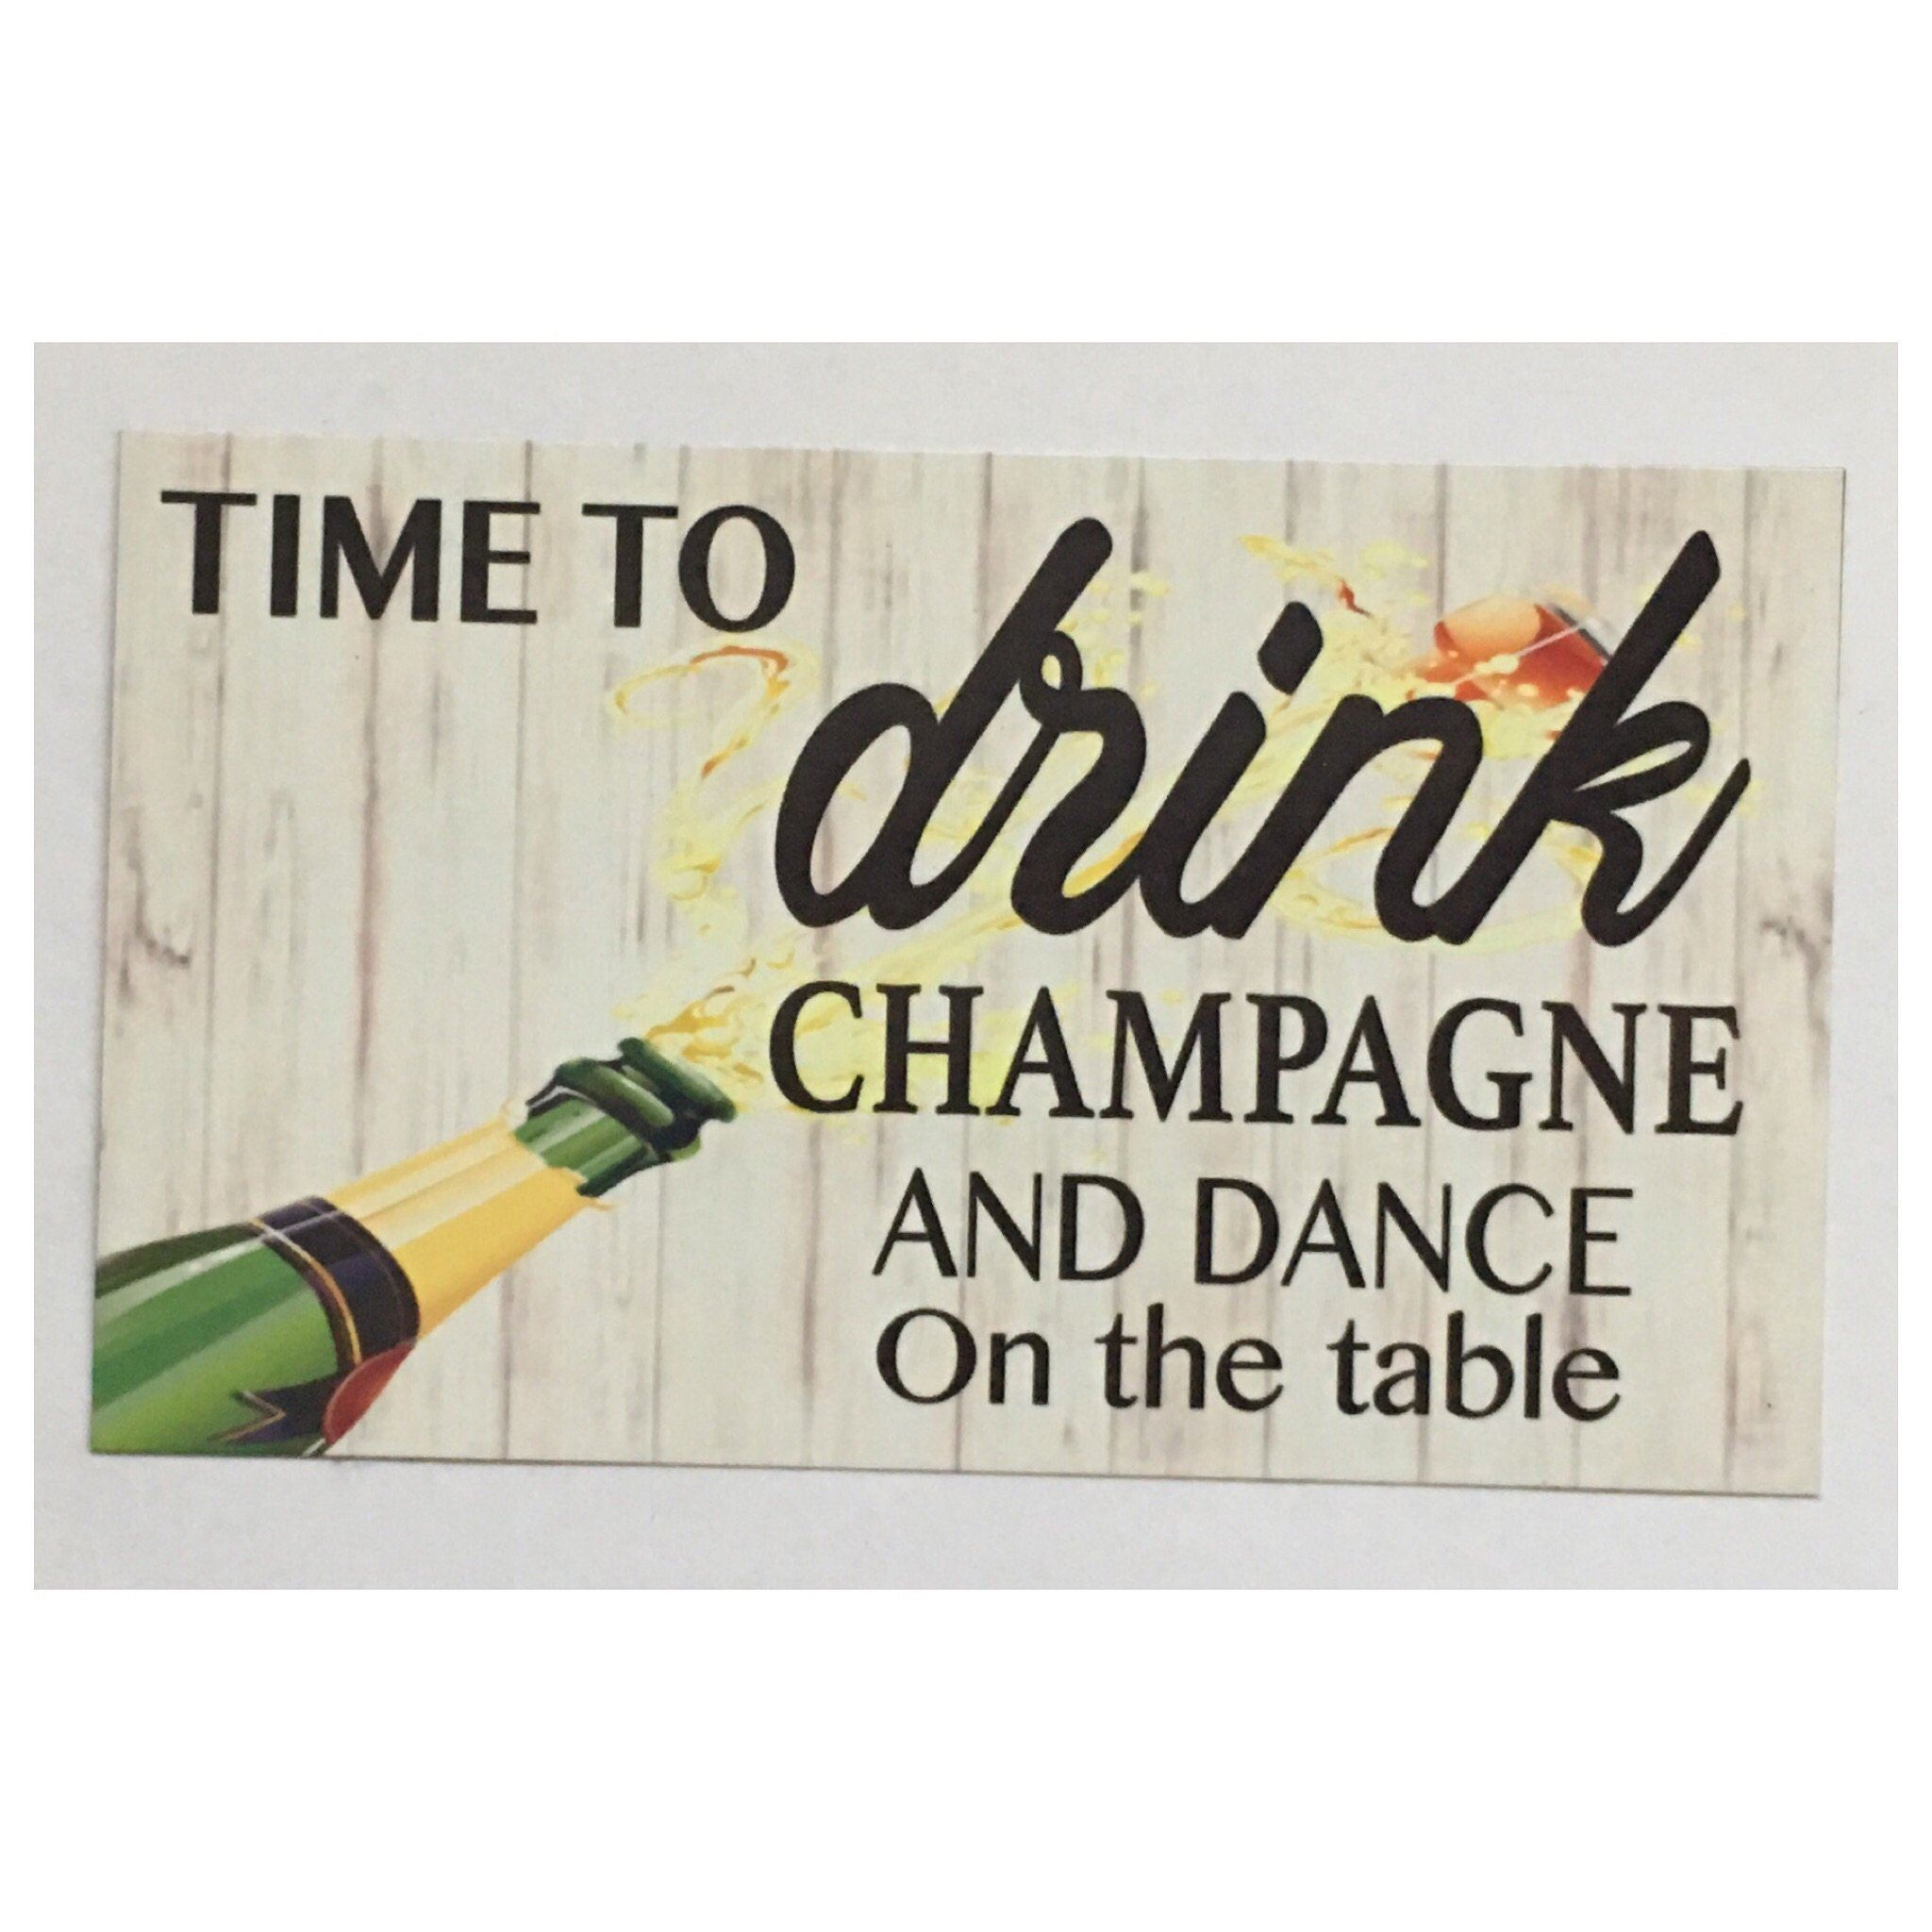 Time to Drink Champagne & Dance on The Table Sign Wall Plaque Or Hanging - The Renmy Store